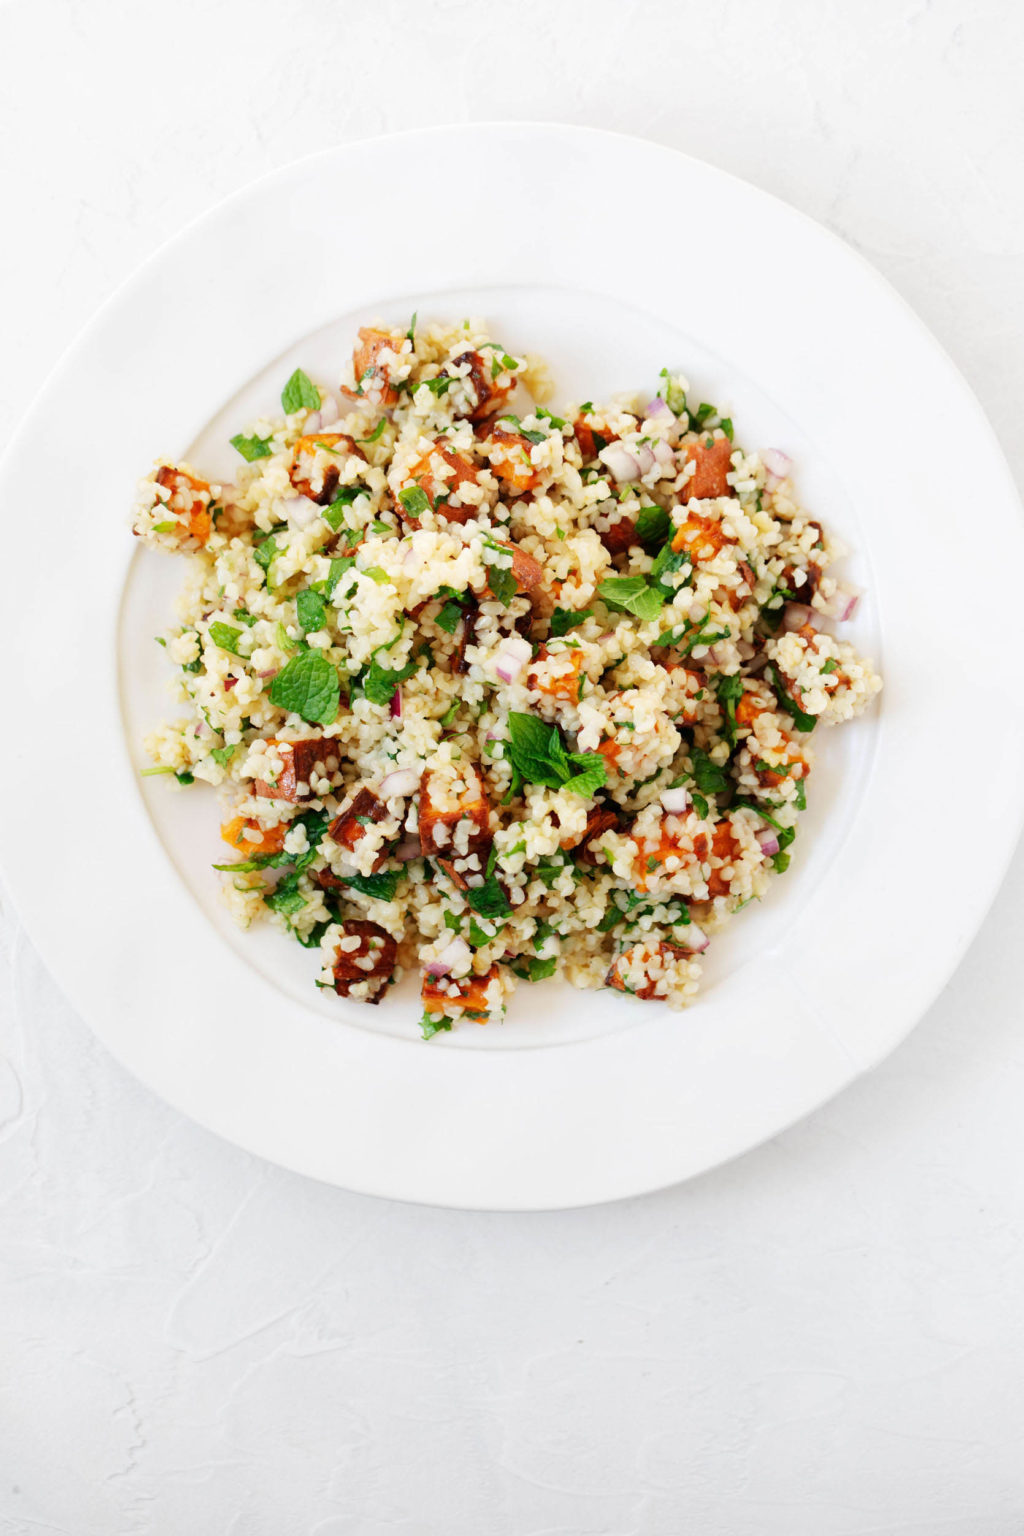 An overhead image of a wide, round plate against a white backdrop. The plate holds a vegan whole grain salad.